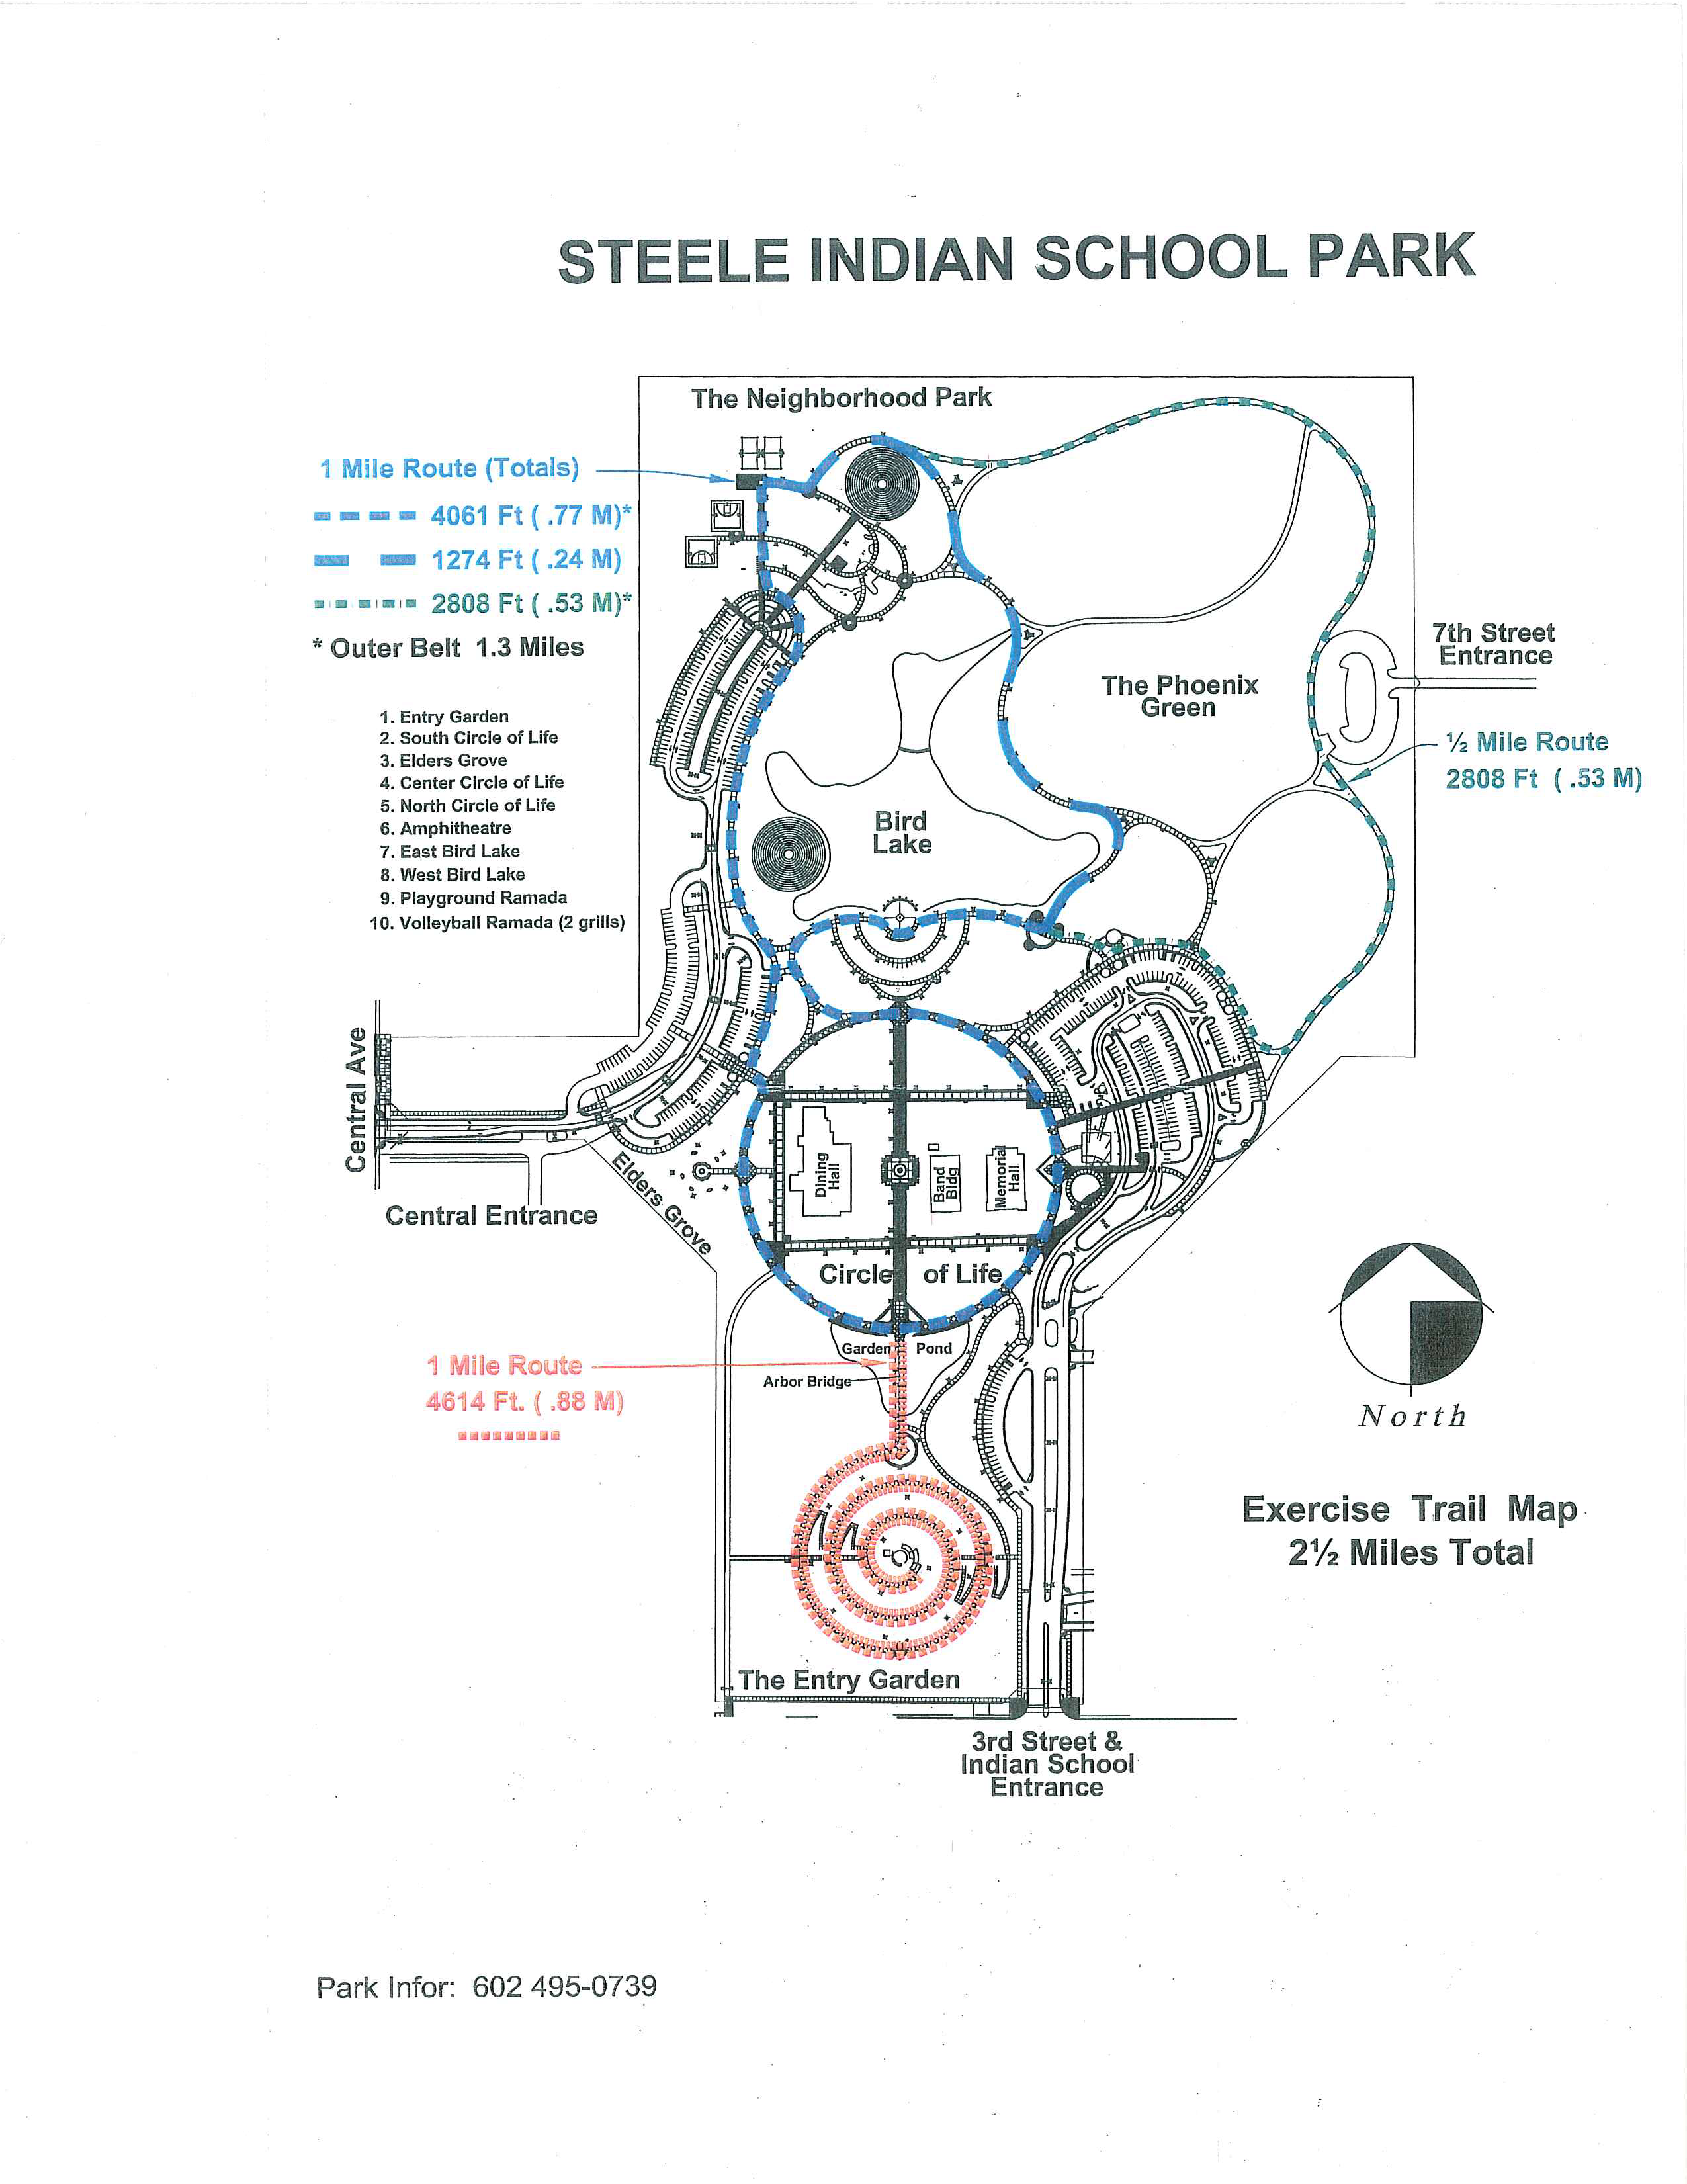 Map of Park (tap image to enlarge)